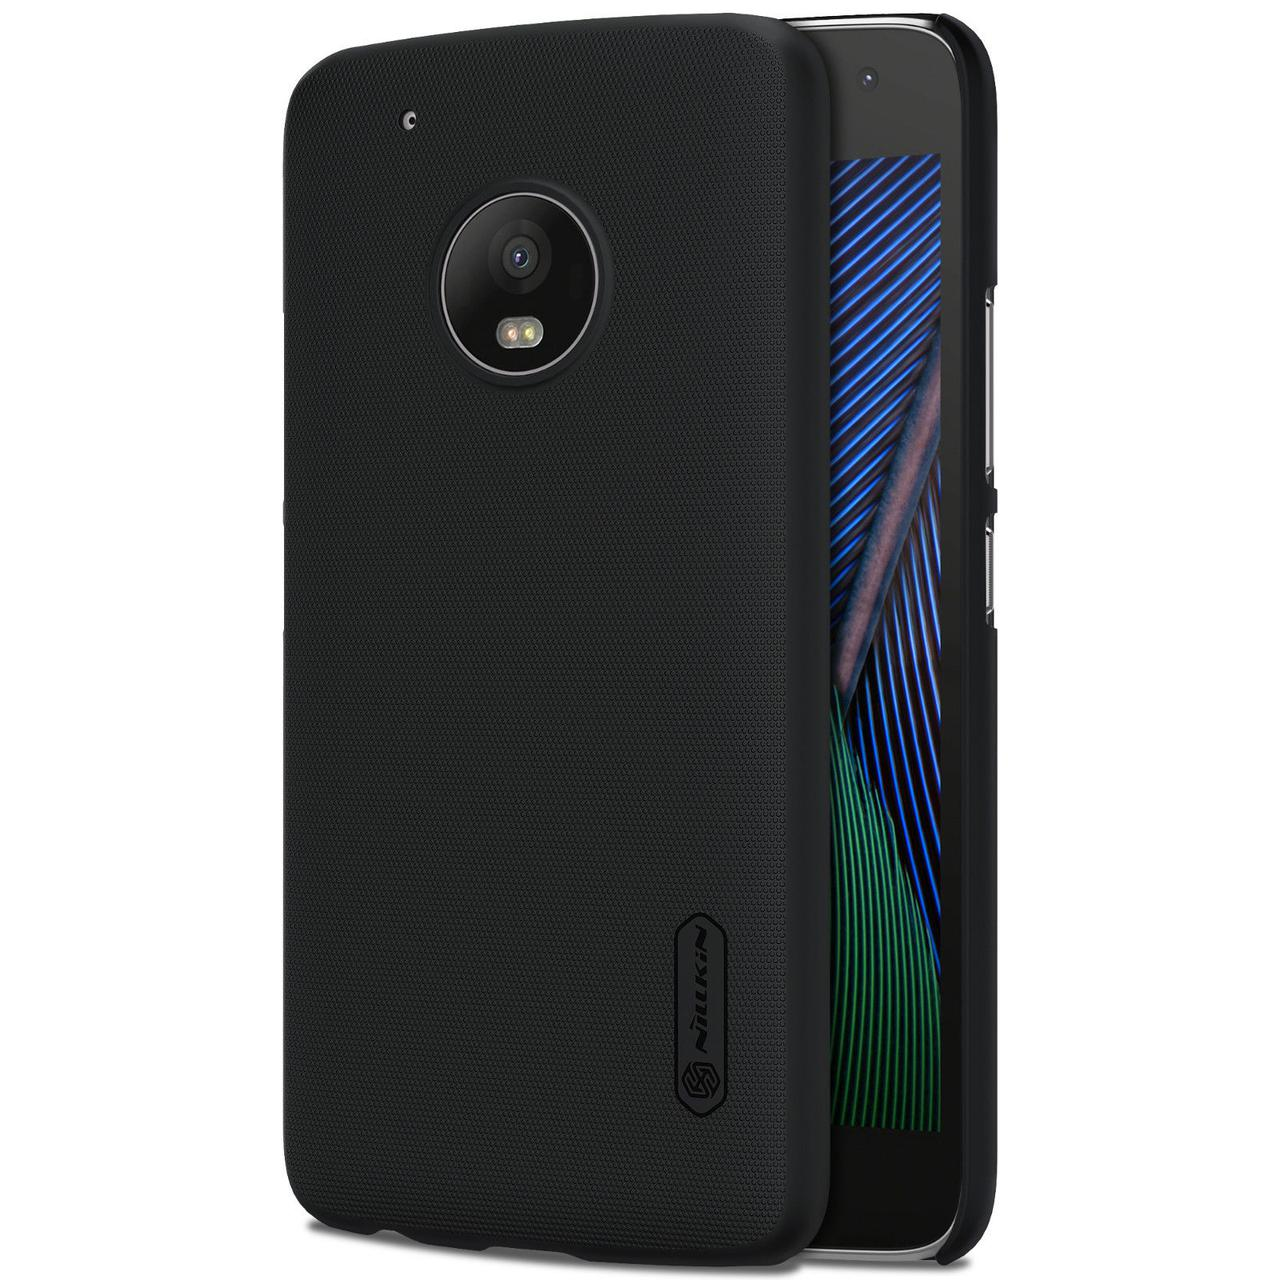 Nillkin Motorola MOTO G5 Plus Super Frosted Shield Black Чехол Накладка Бампер